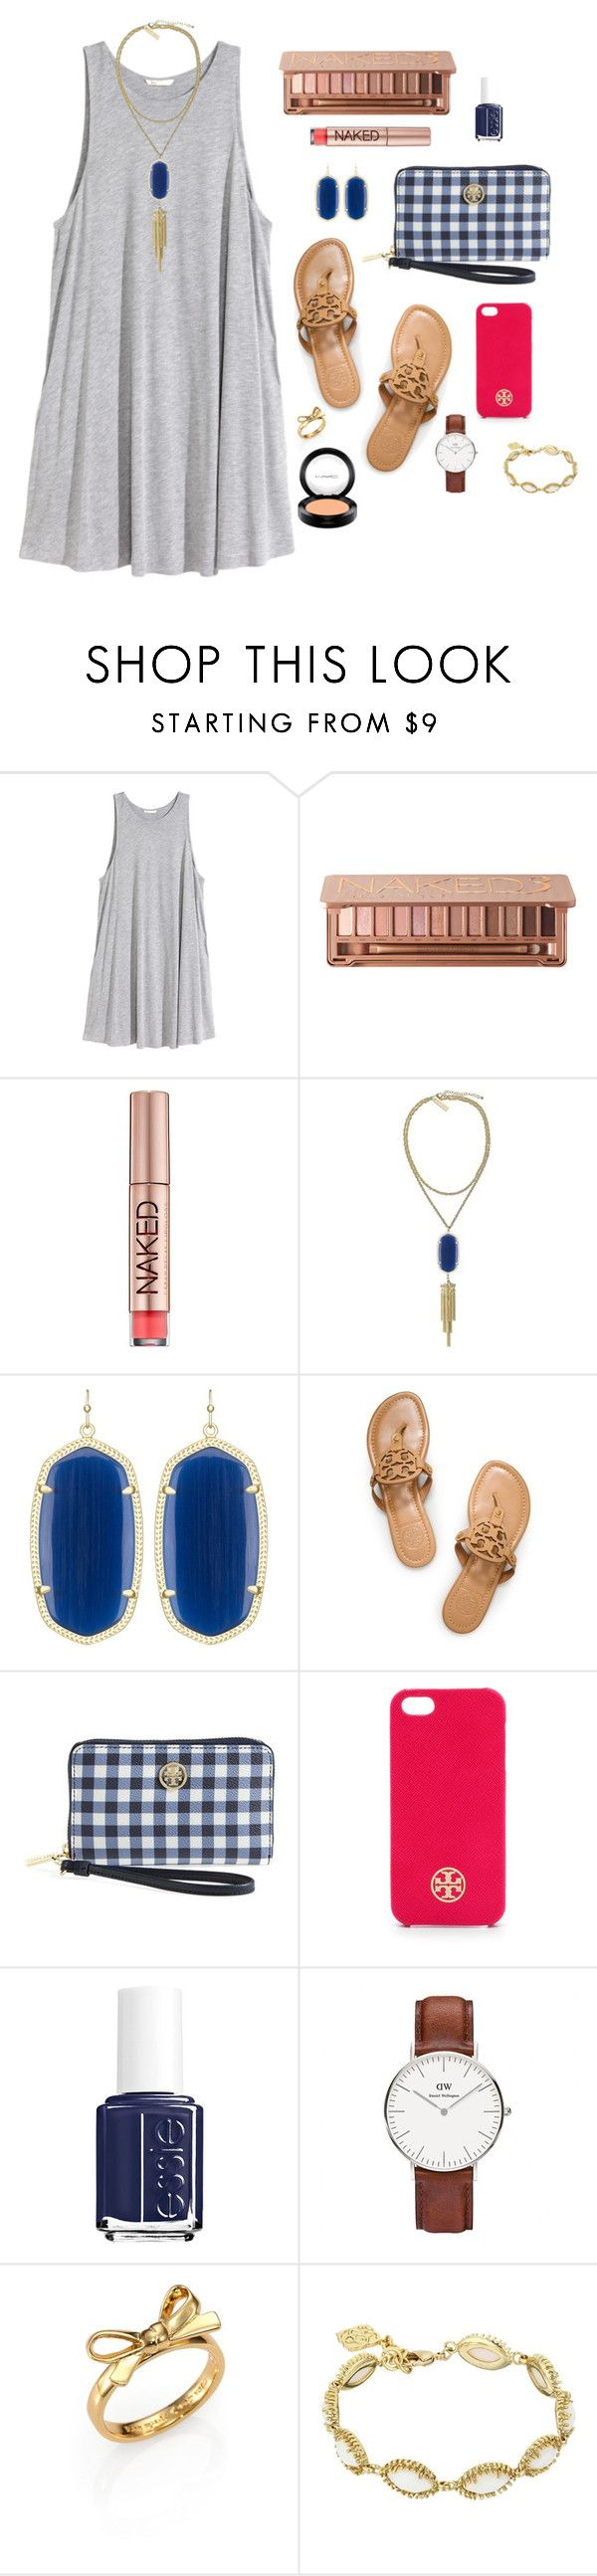 """No. 46"" by juliabrueggemeyer ❤ liked on Polyvore featuring H&M, Urban Decay, Kendra Scott, Tory Burch, Essie, Daniel Wellington, Kate Spade and MAC Cosmetics"